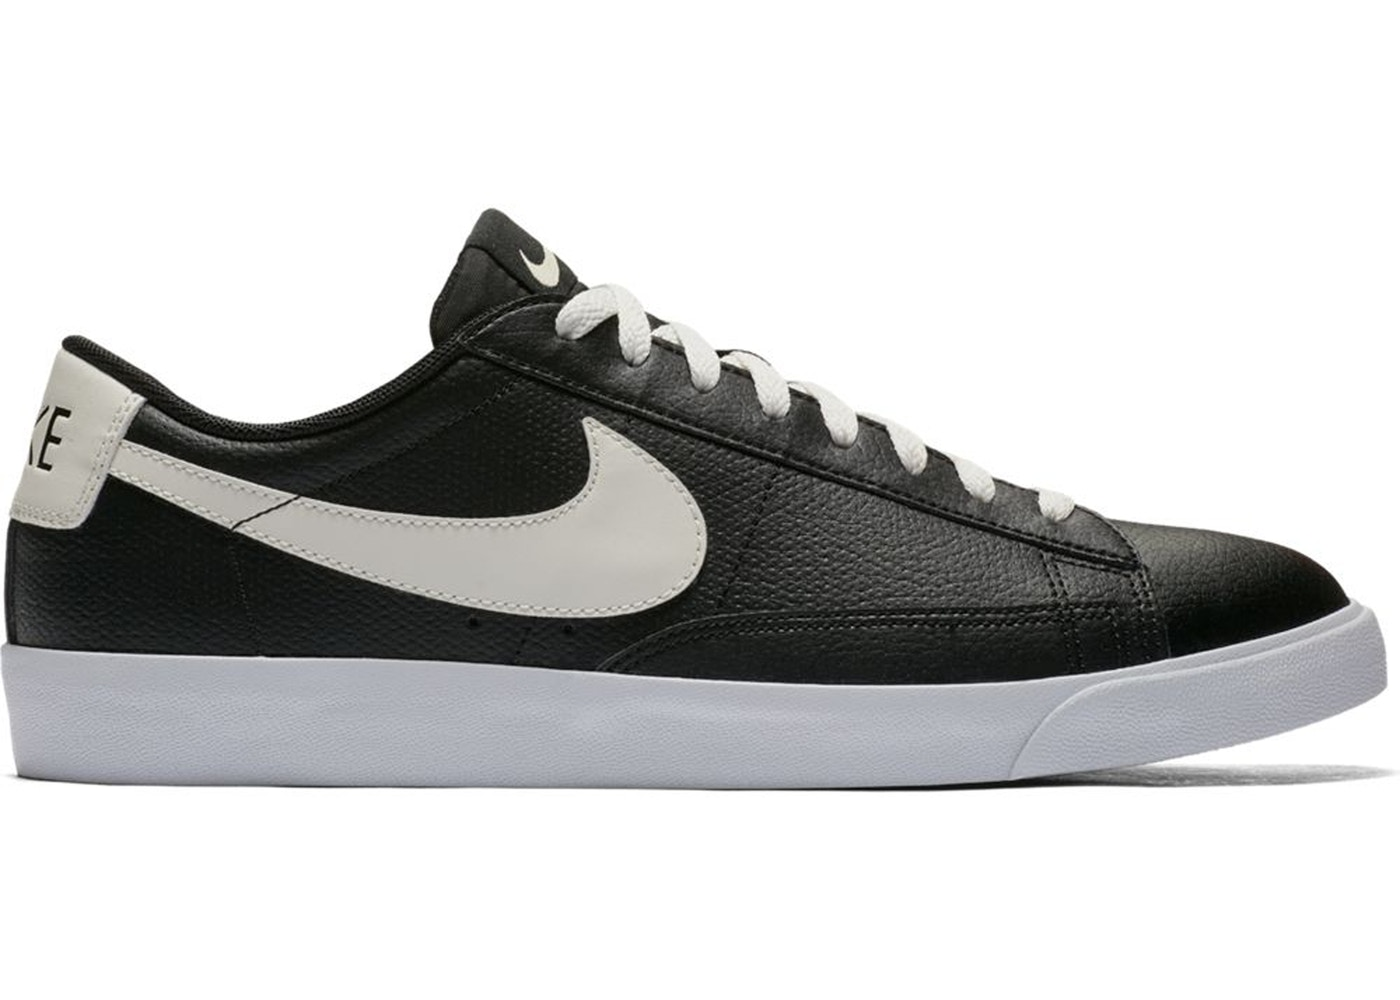 Low Blazer Leather Sail Nike Black wN0Om8vn